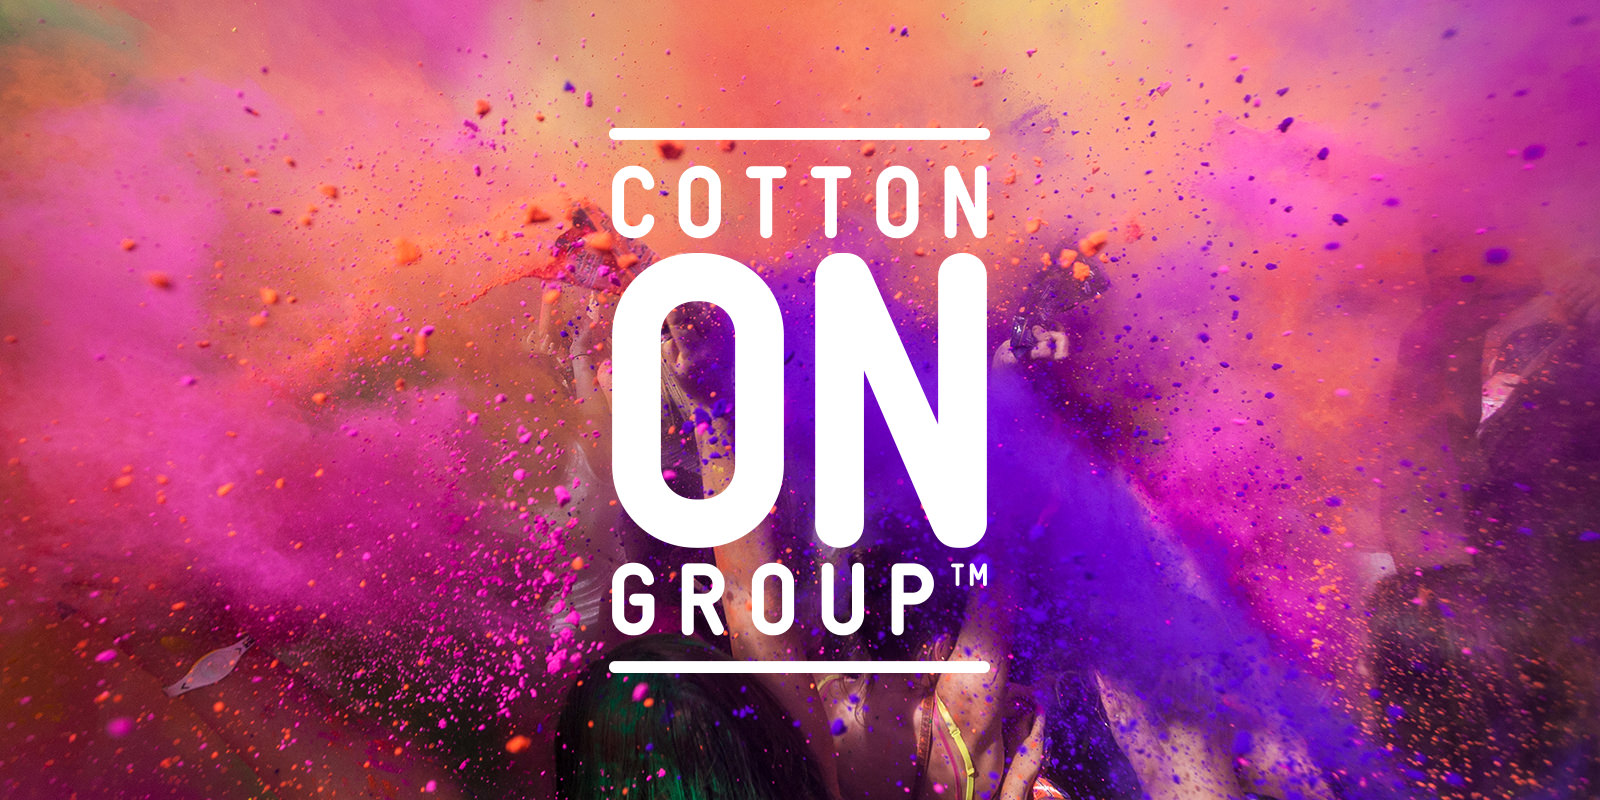 Cotton ON Group